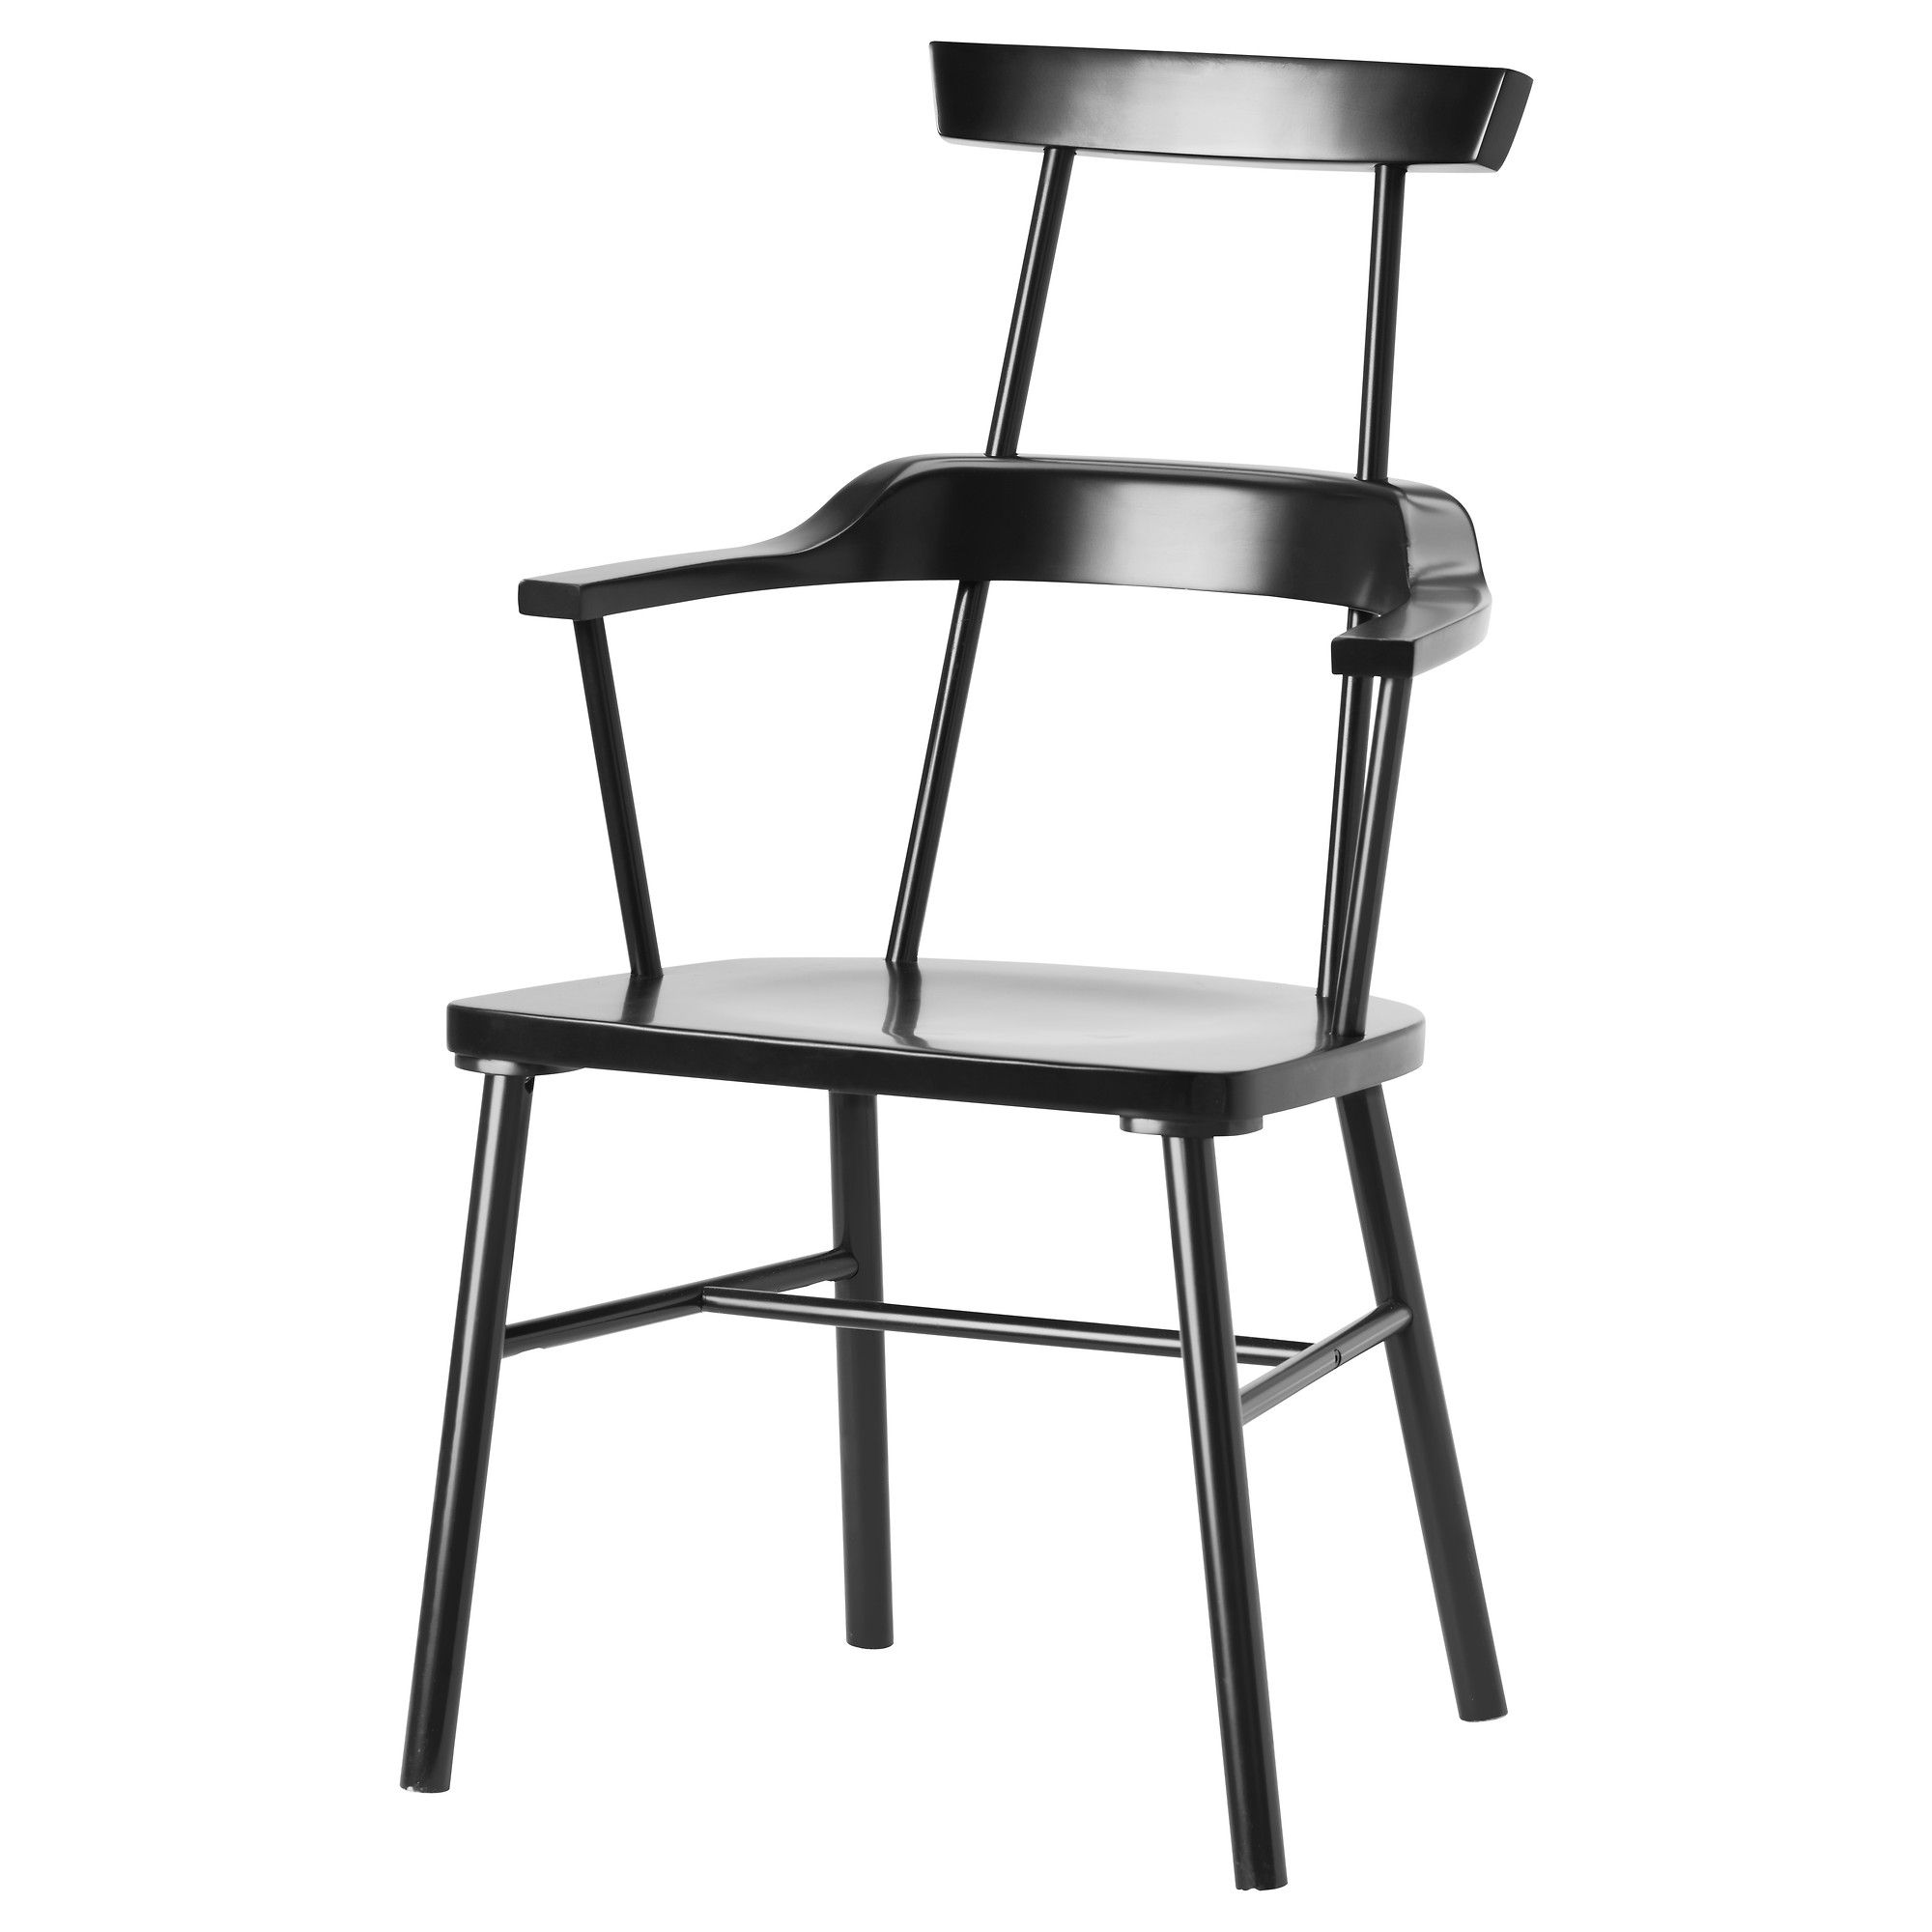 Black ikea chair - Ikea Ps 2012 Chair With Armrests High Back Ikea